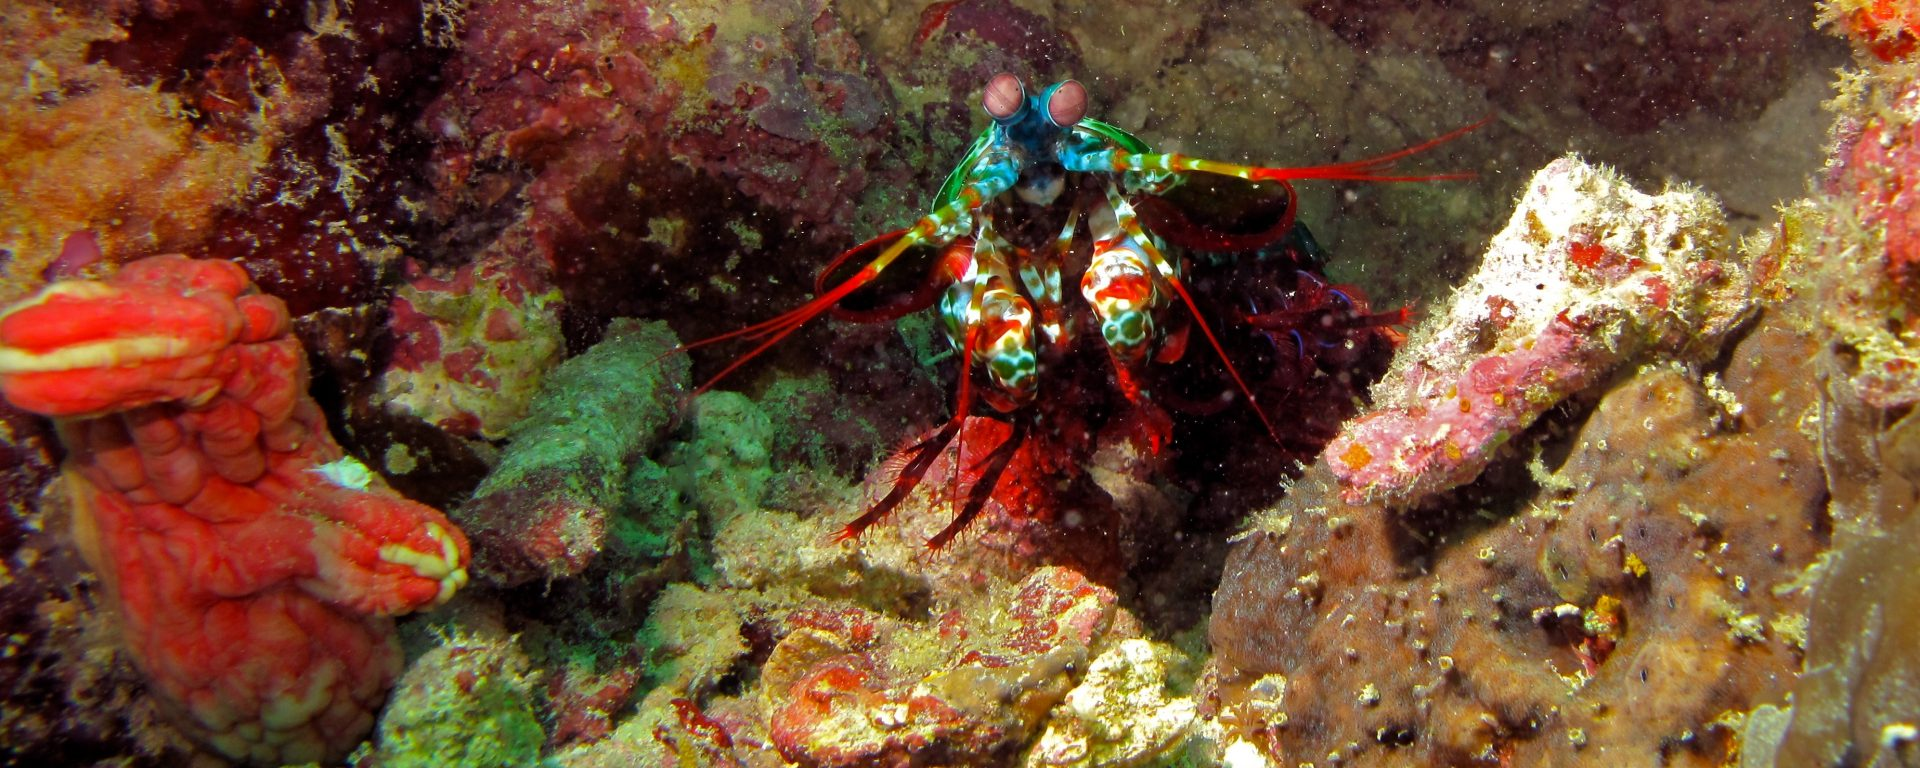 UMBC's Rickesh Patel determines how mantis shrimp find their way home